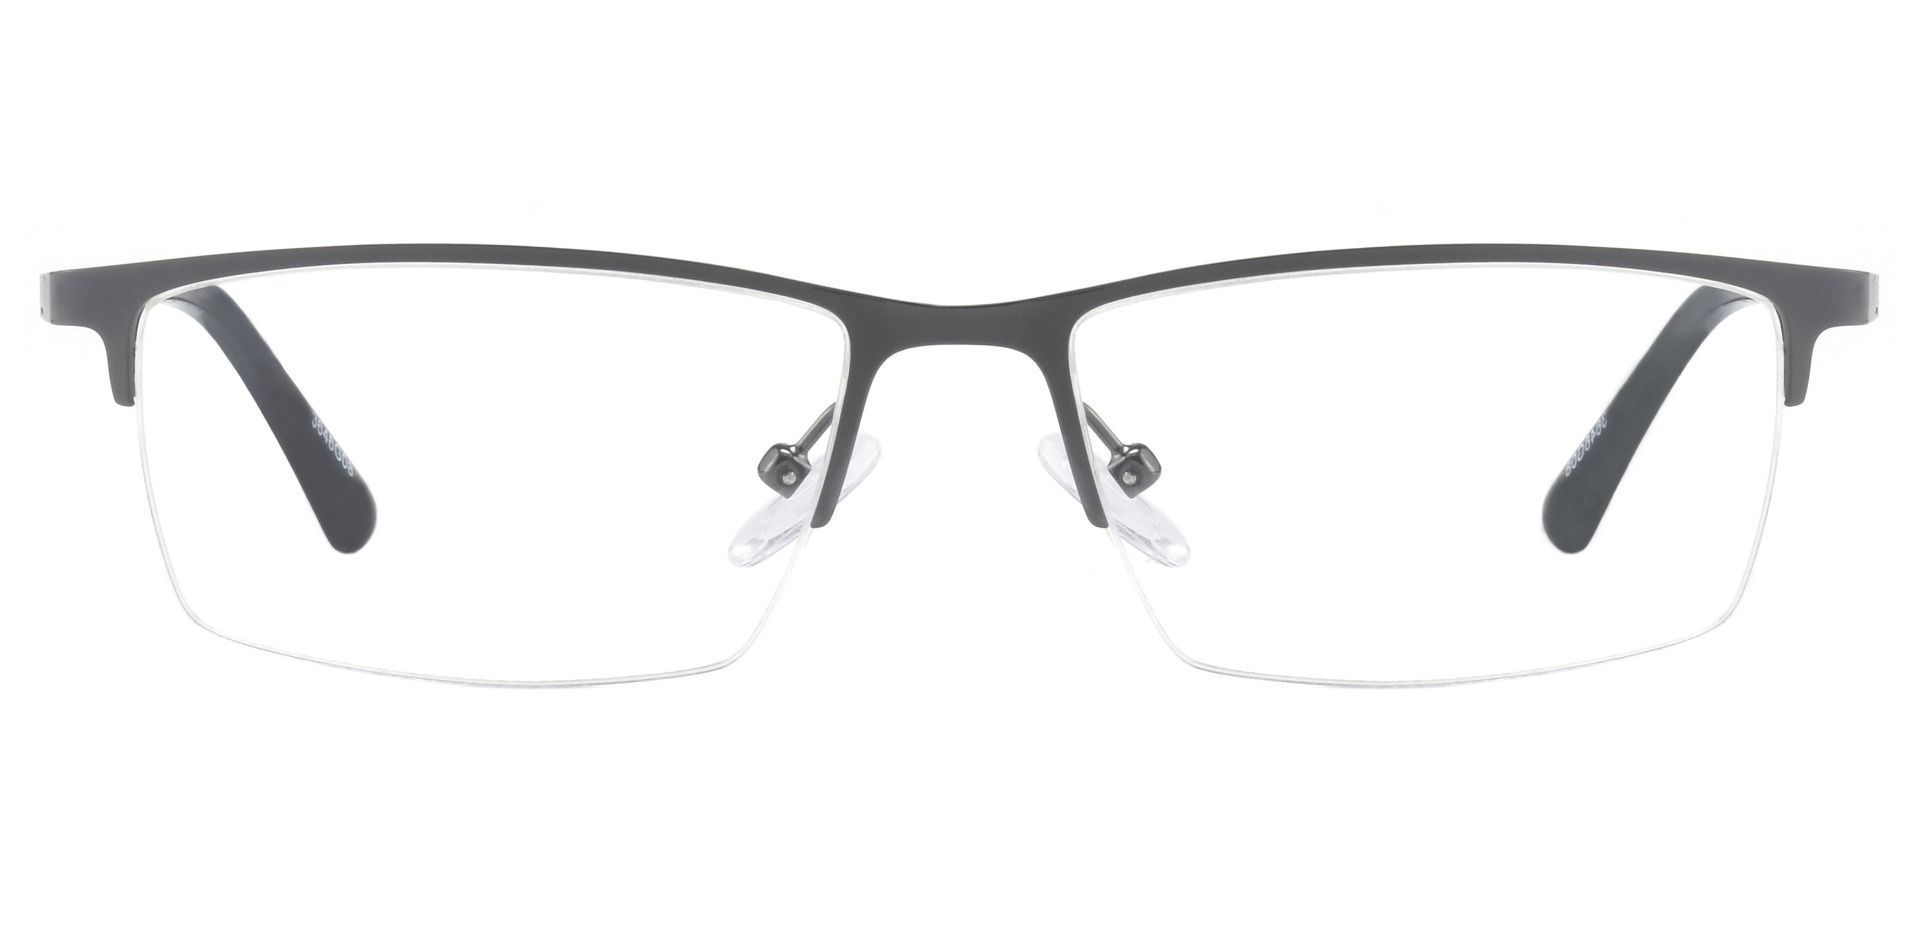 Lombard Rectangle Lined Bifocal Glasses - Gray